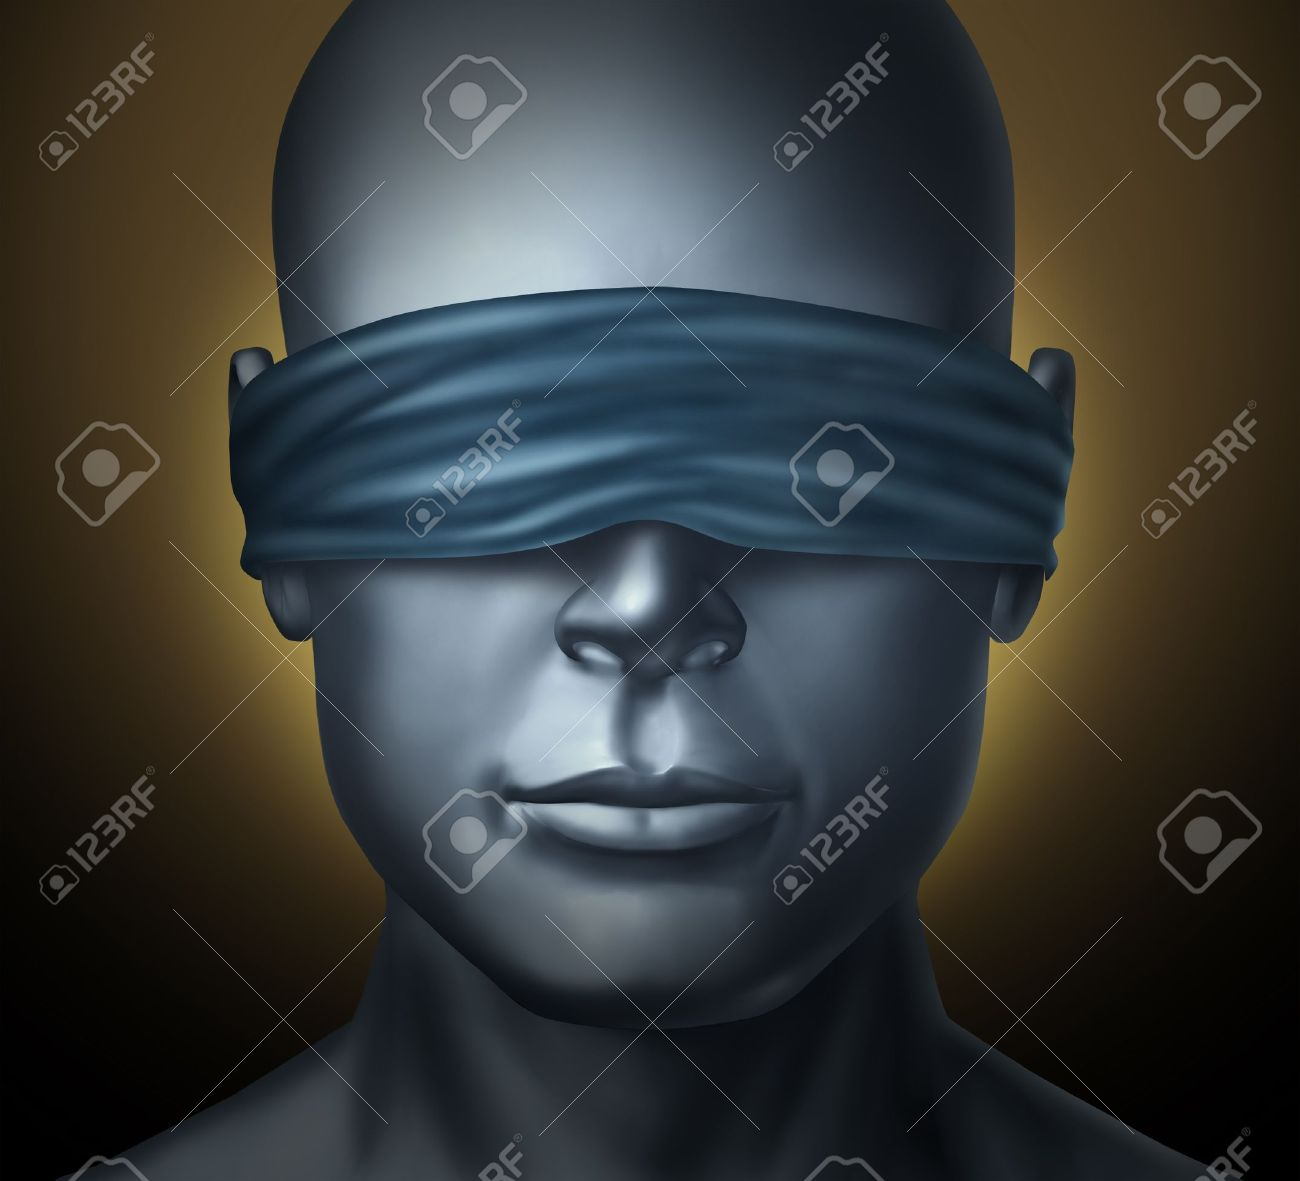 Blindfolded Concept With A Human Head With A Blindfold As A Symbol Of Honesty And Being A Neutral Judge With Trust And Blind Justice Or Living With Solitude